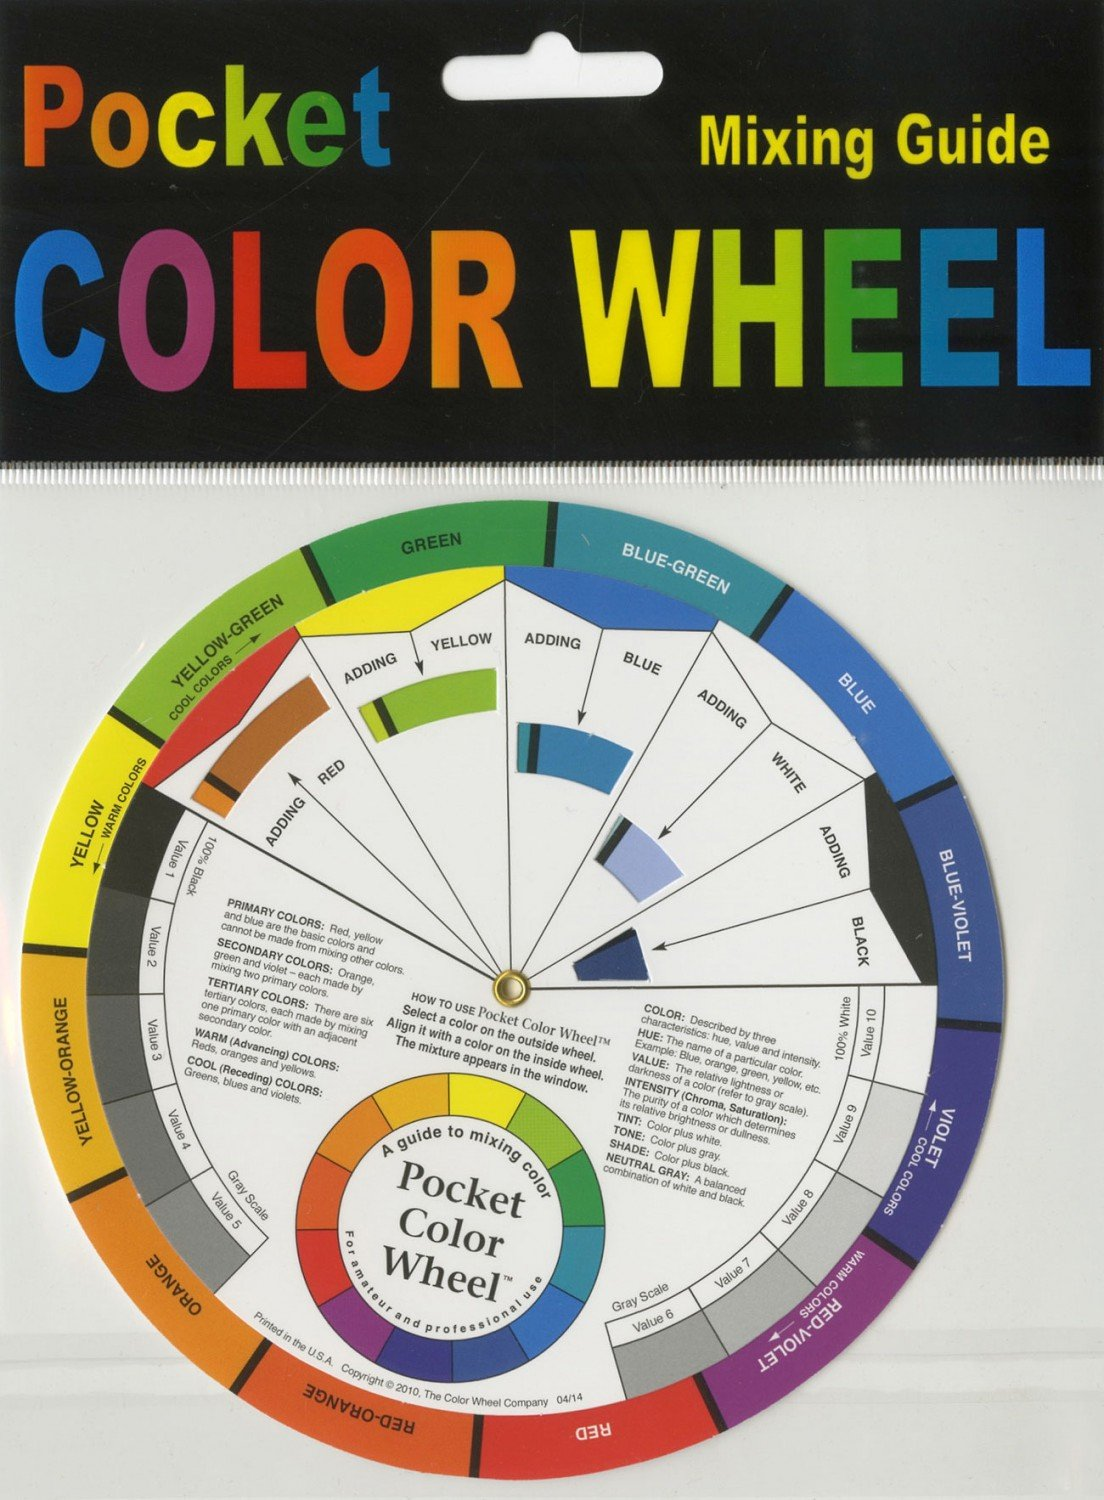 Pocket Size Color Wheel Tool